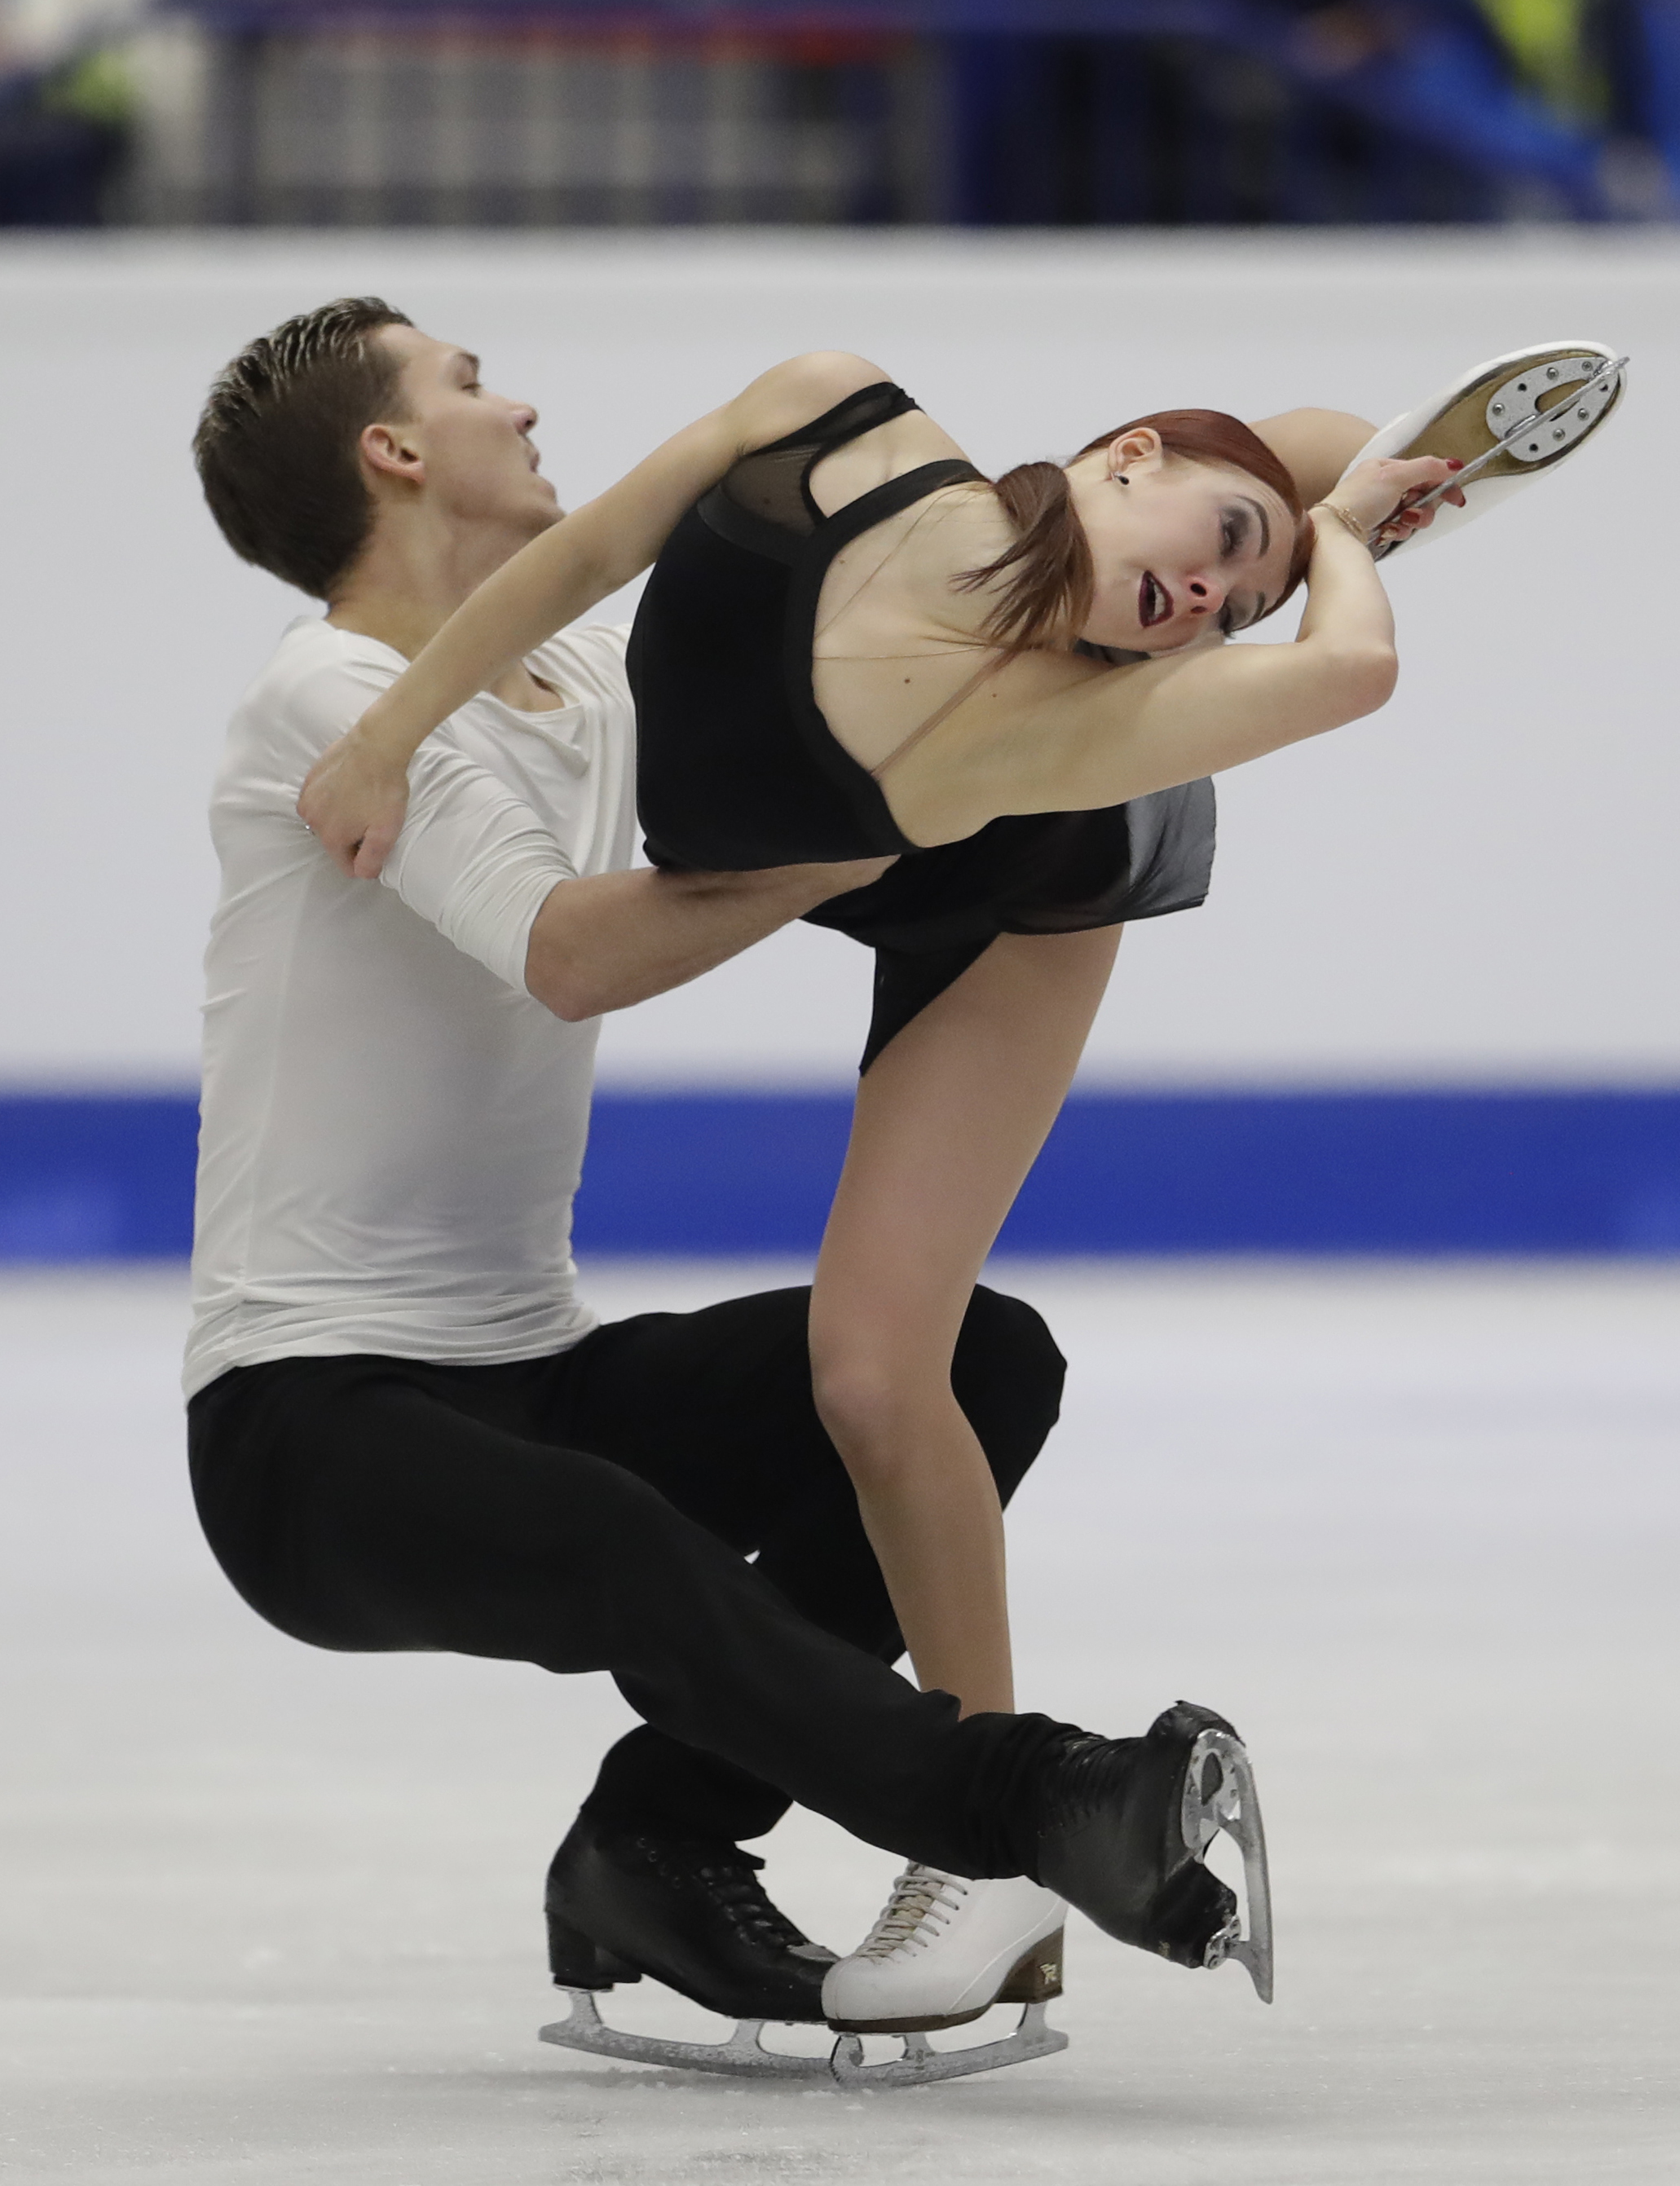 Russia's Ekaterina Bobrova and Dmitri Soloviev skate their ice dance free dance at the European Figure Skating Championships in Ostrava, Czech Republic, Saturday, Jan. 28, 2017. (AP Photo/Petr David Josek)